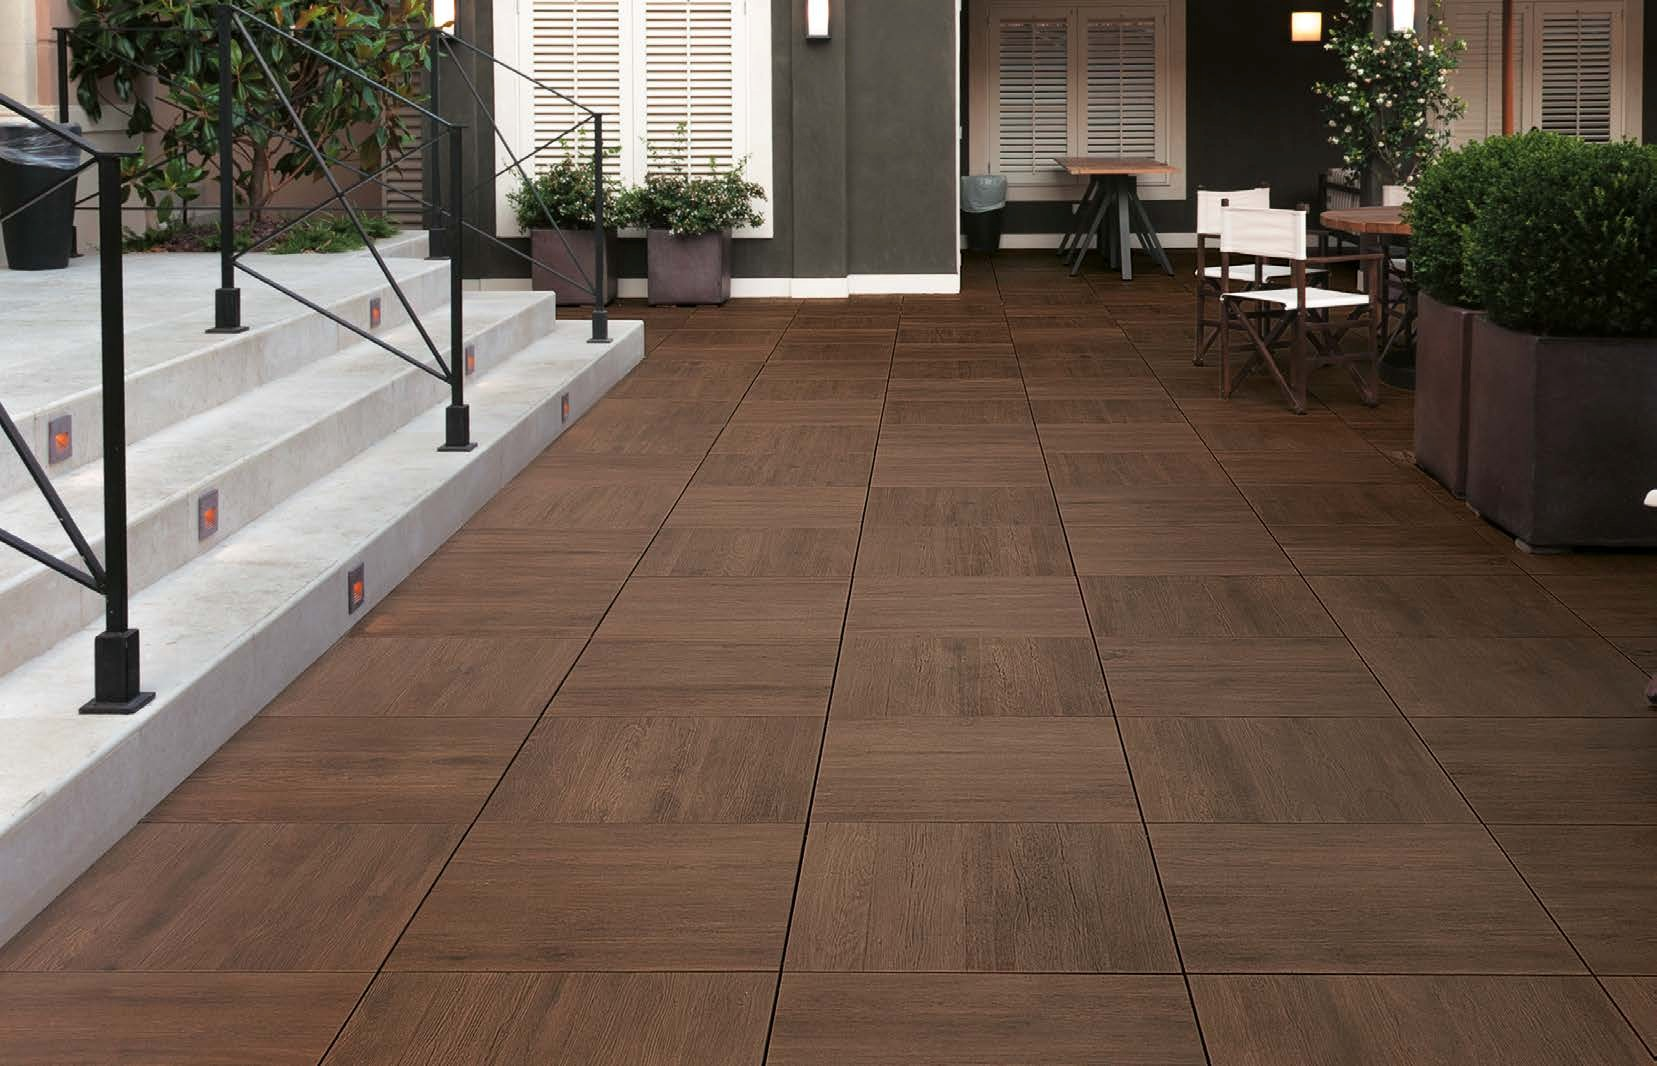 Hdg Legno Wood Finish Pavers Walnut Hdg Building Materials